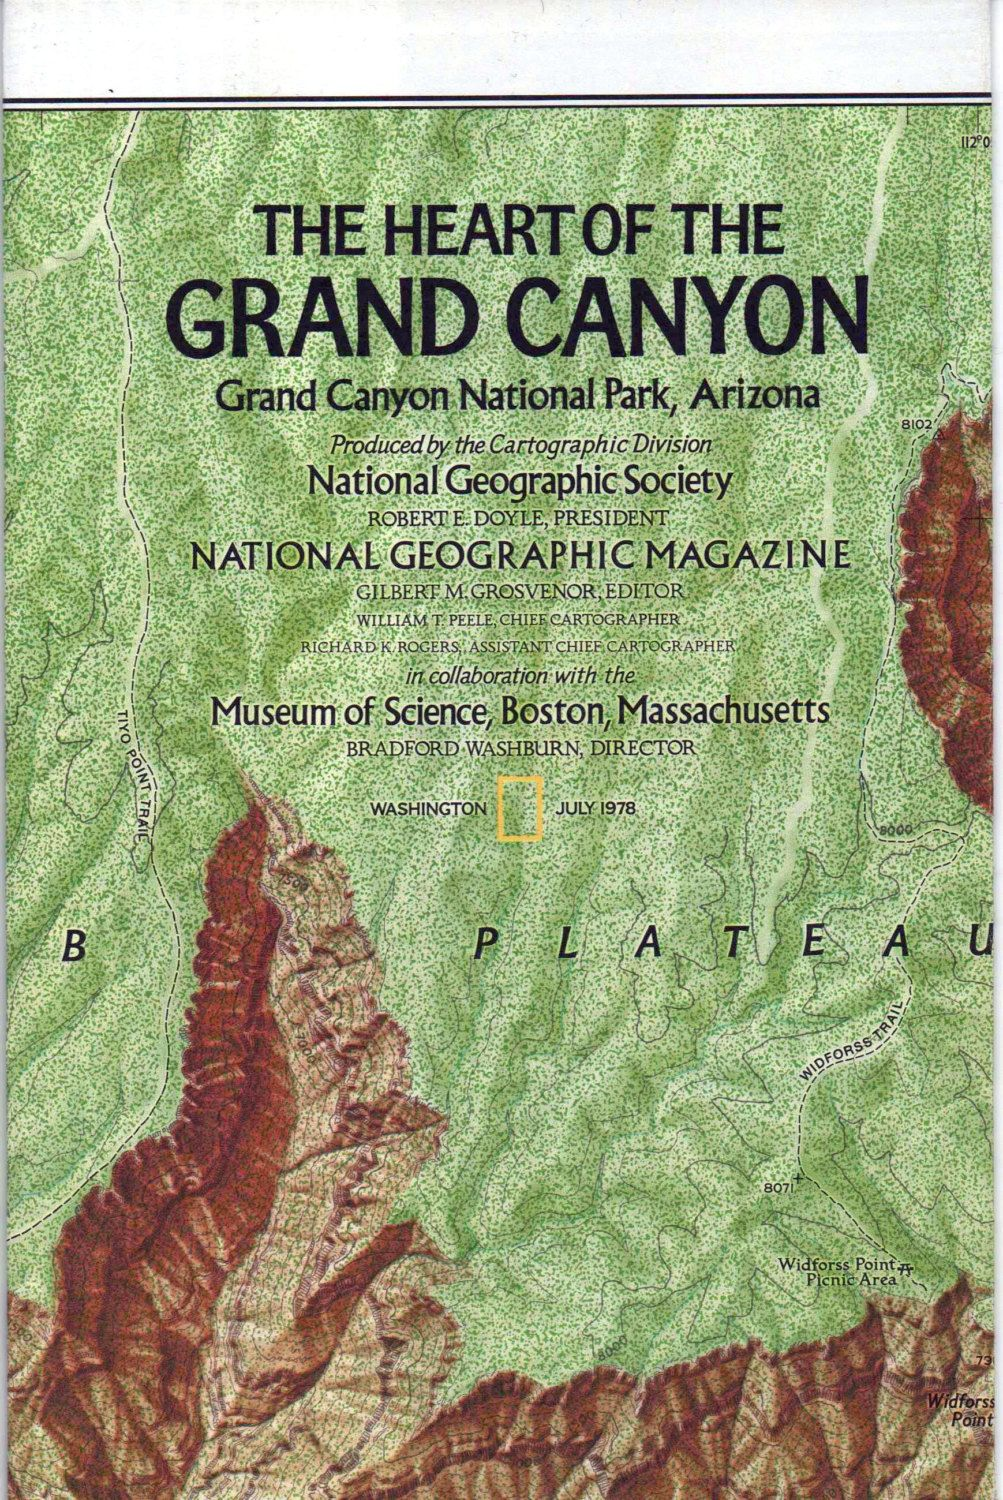 National geographic map poster the heart of the grand canyon national geographic map poster the heart of the grand canyon 1978 great shape by vintagenejunk on etsy gumiabroncs Images